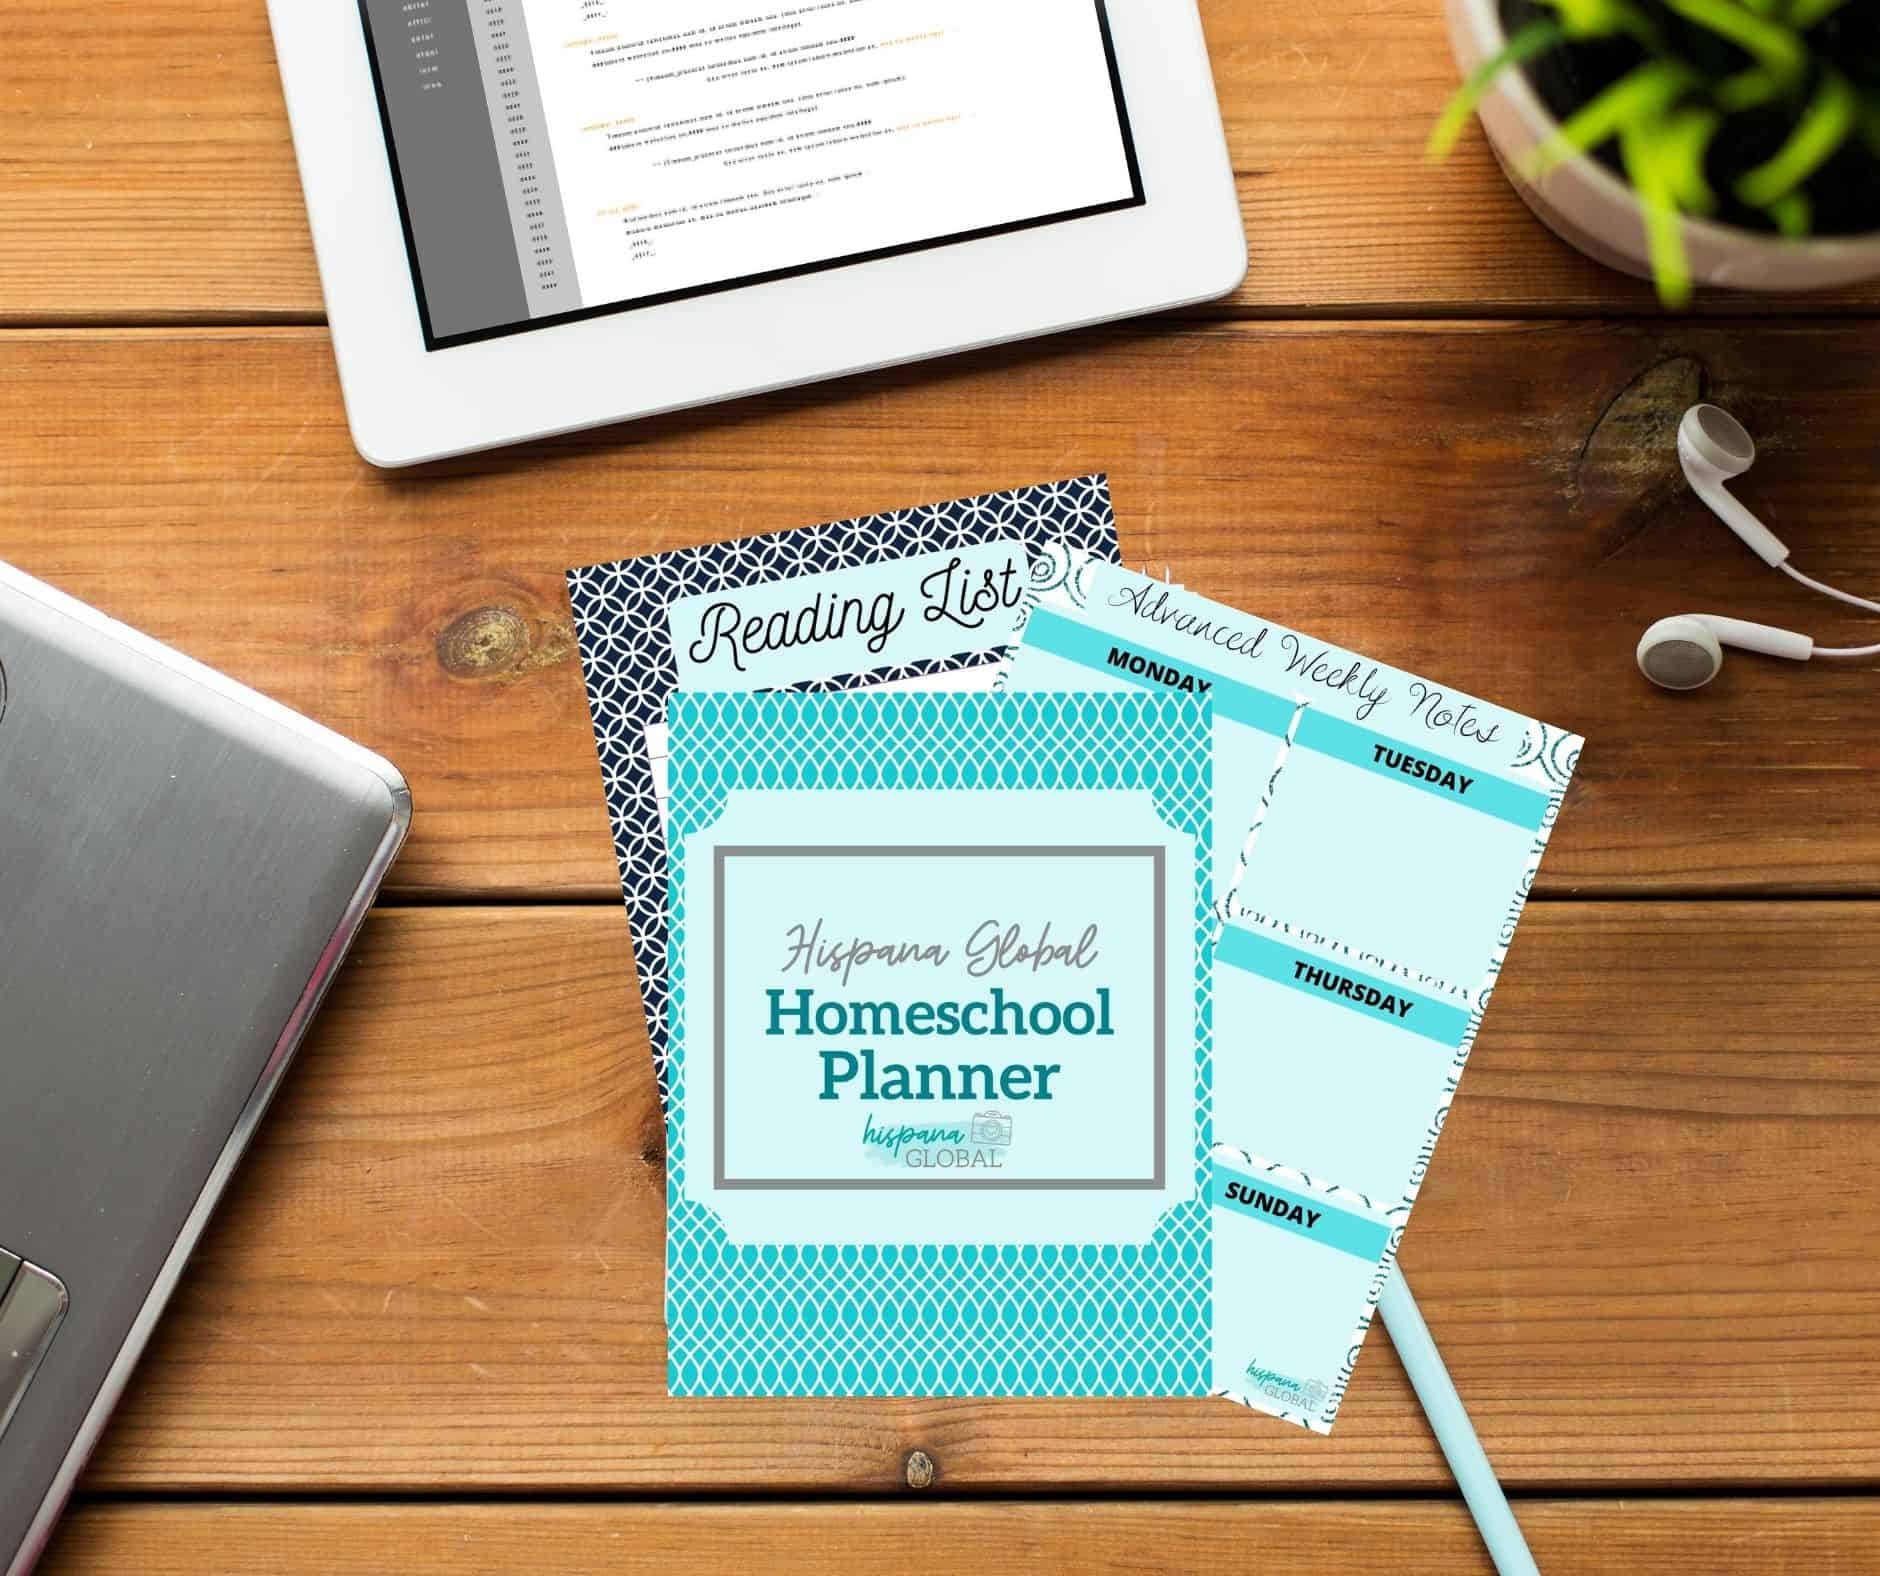 If your child will be doing distance learning, here are 10 tips to help you. Also, this free homeschool planner can help you stay organized.